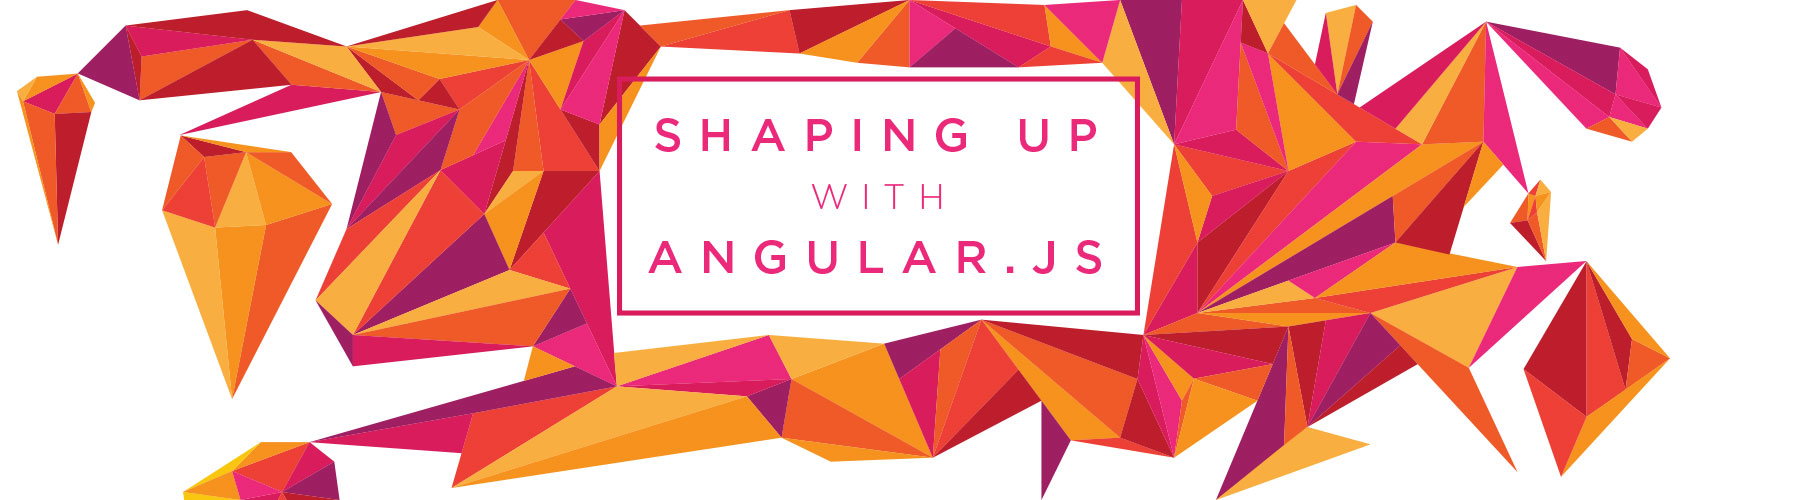 Shaping up with Angular